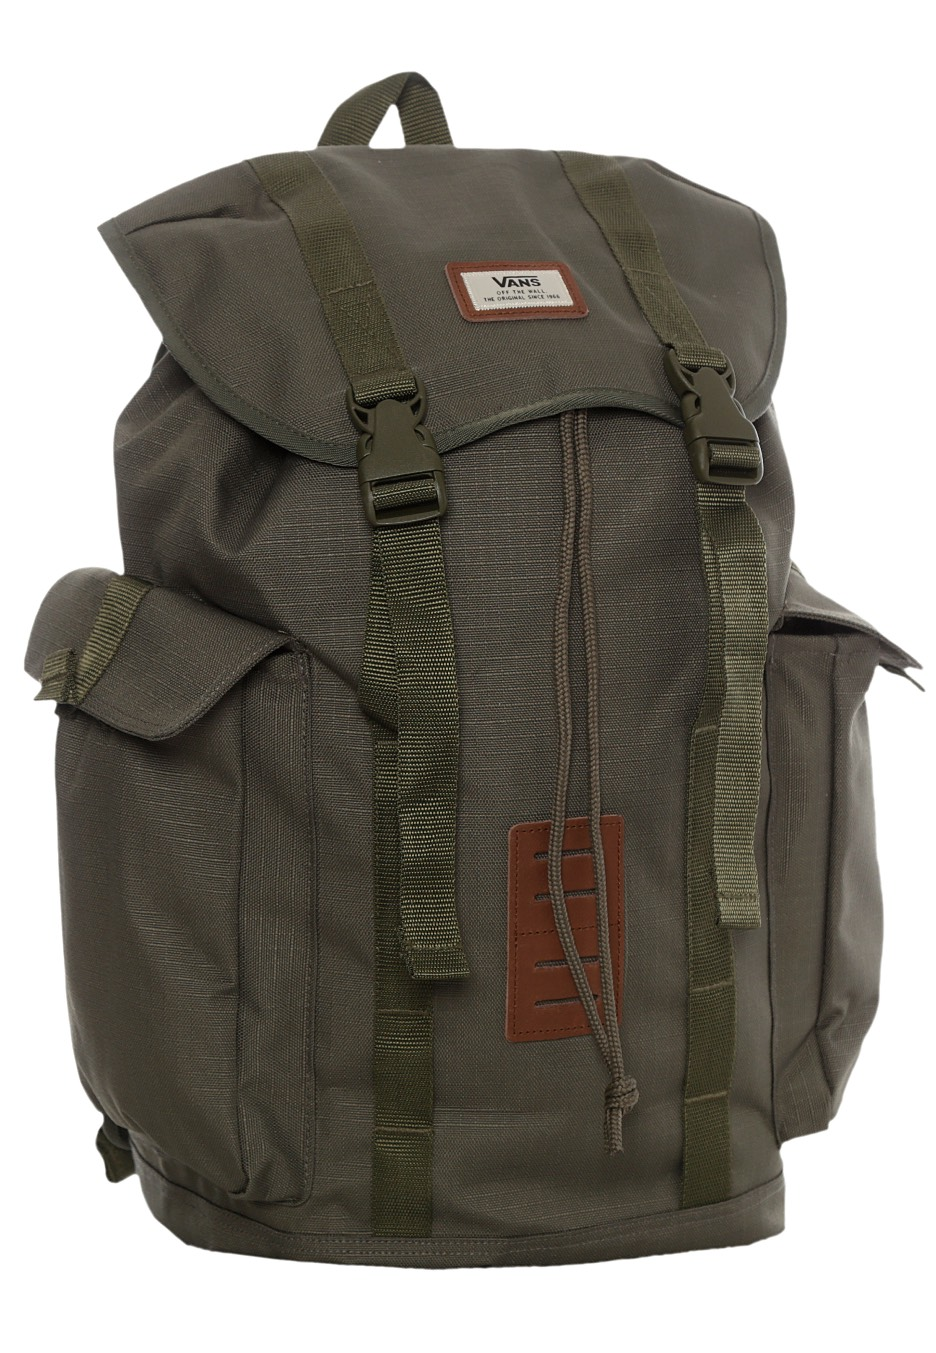 76097eb7e3 Buy 2 OFF ANY vans of the wall backpack CASE AND GET 70% OFF!